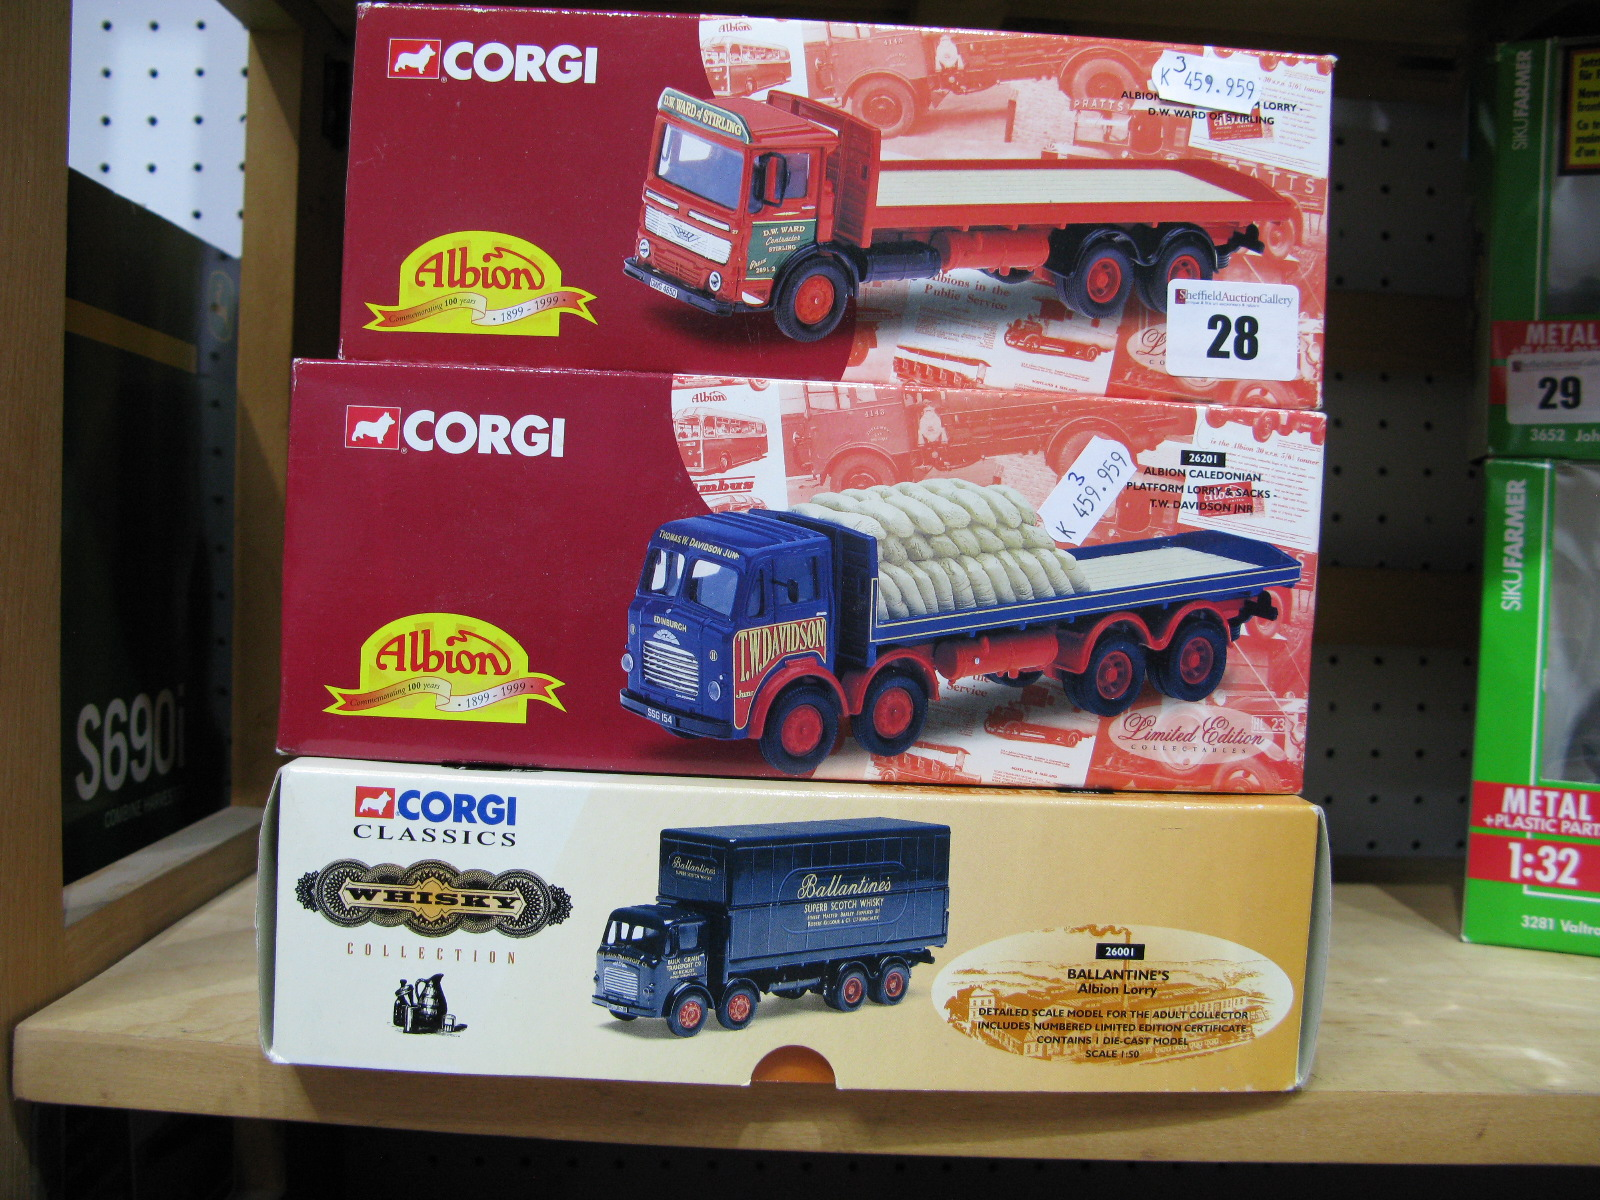 Lot 28 - Three 1/50th Scale Model Diecast Lorries By Corgi, all Albions in Scottish Liveries. All boxed and